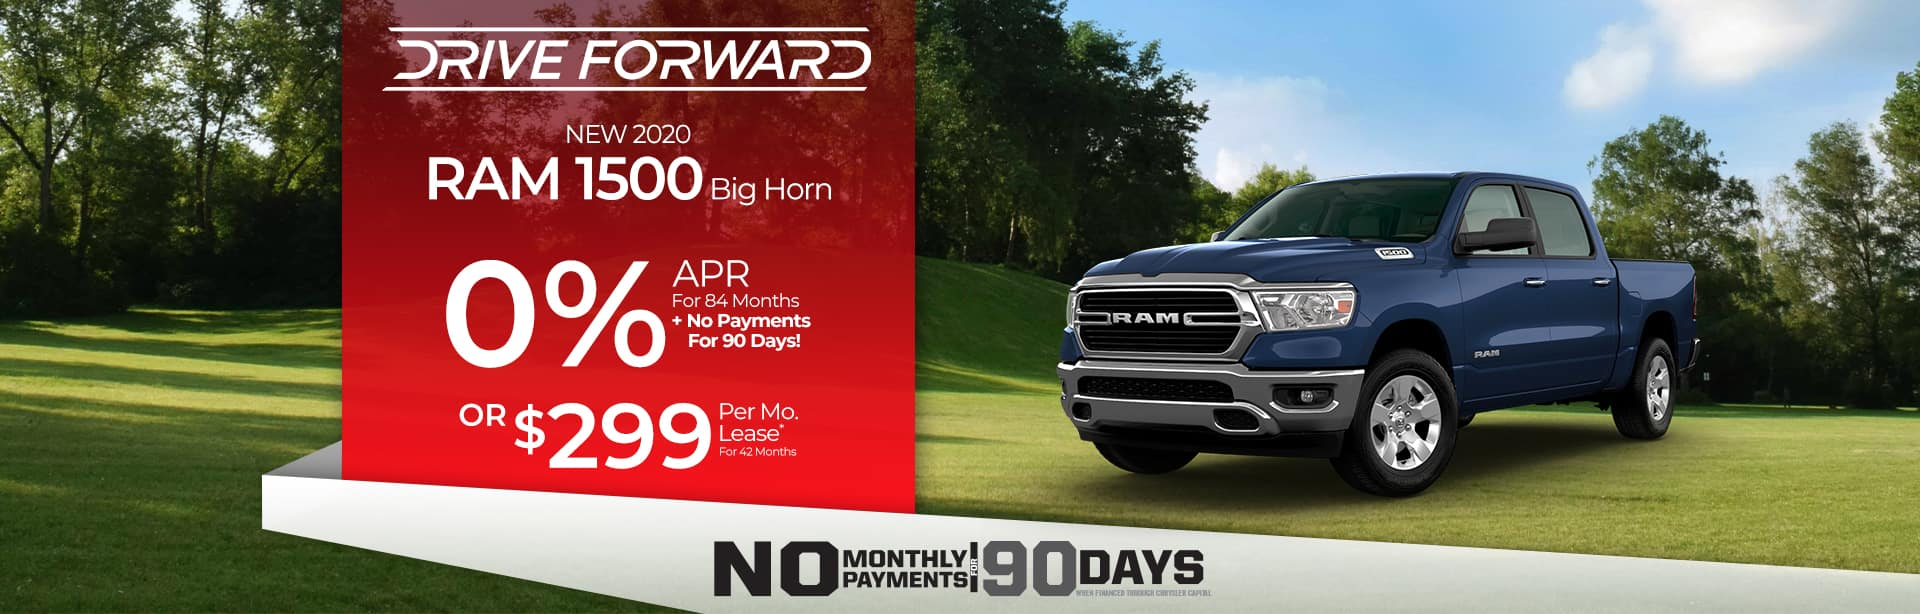 Finance Special on an All-New Ram 1500 Near Fort Wayne, Indiana